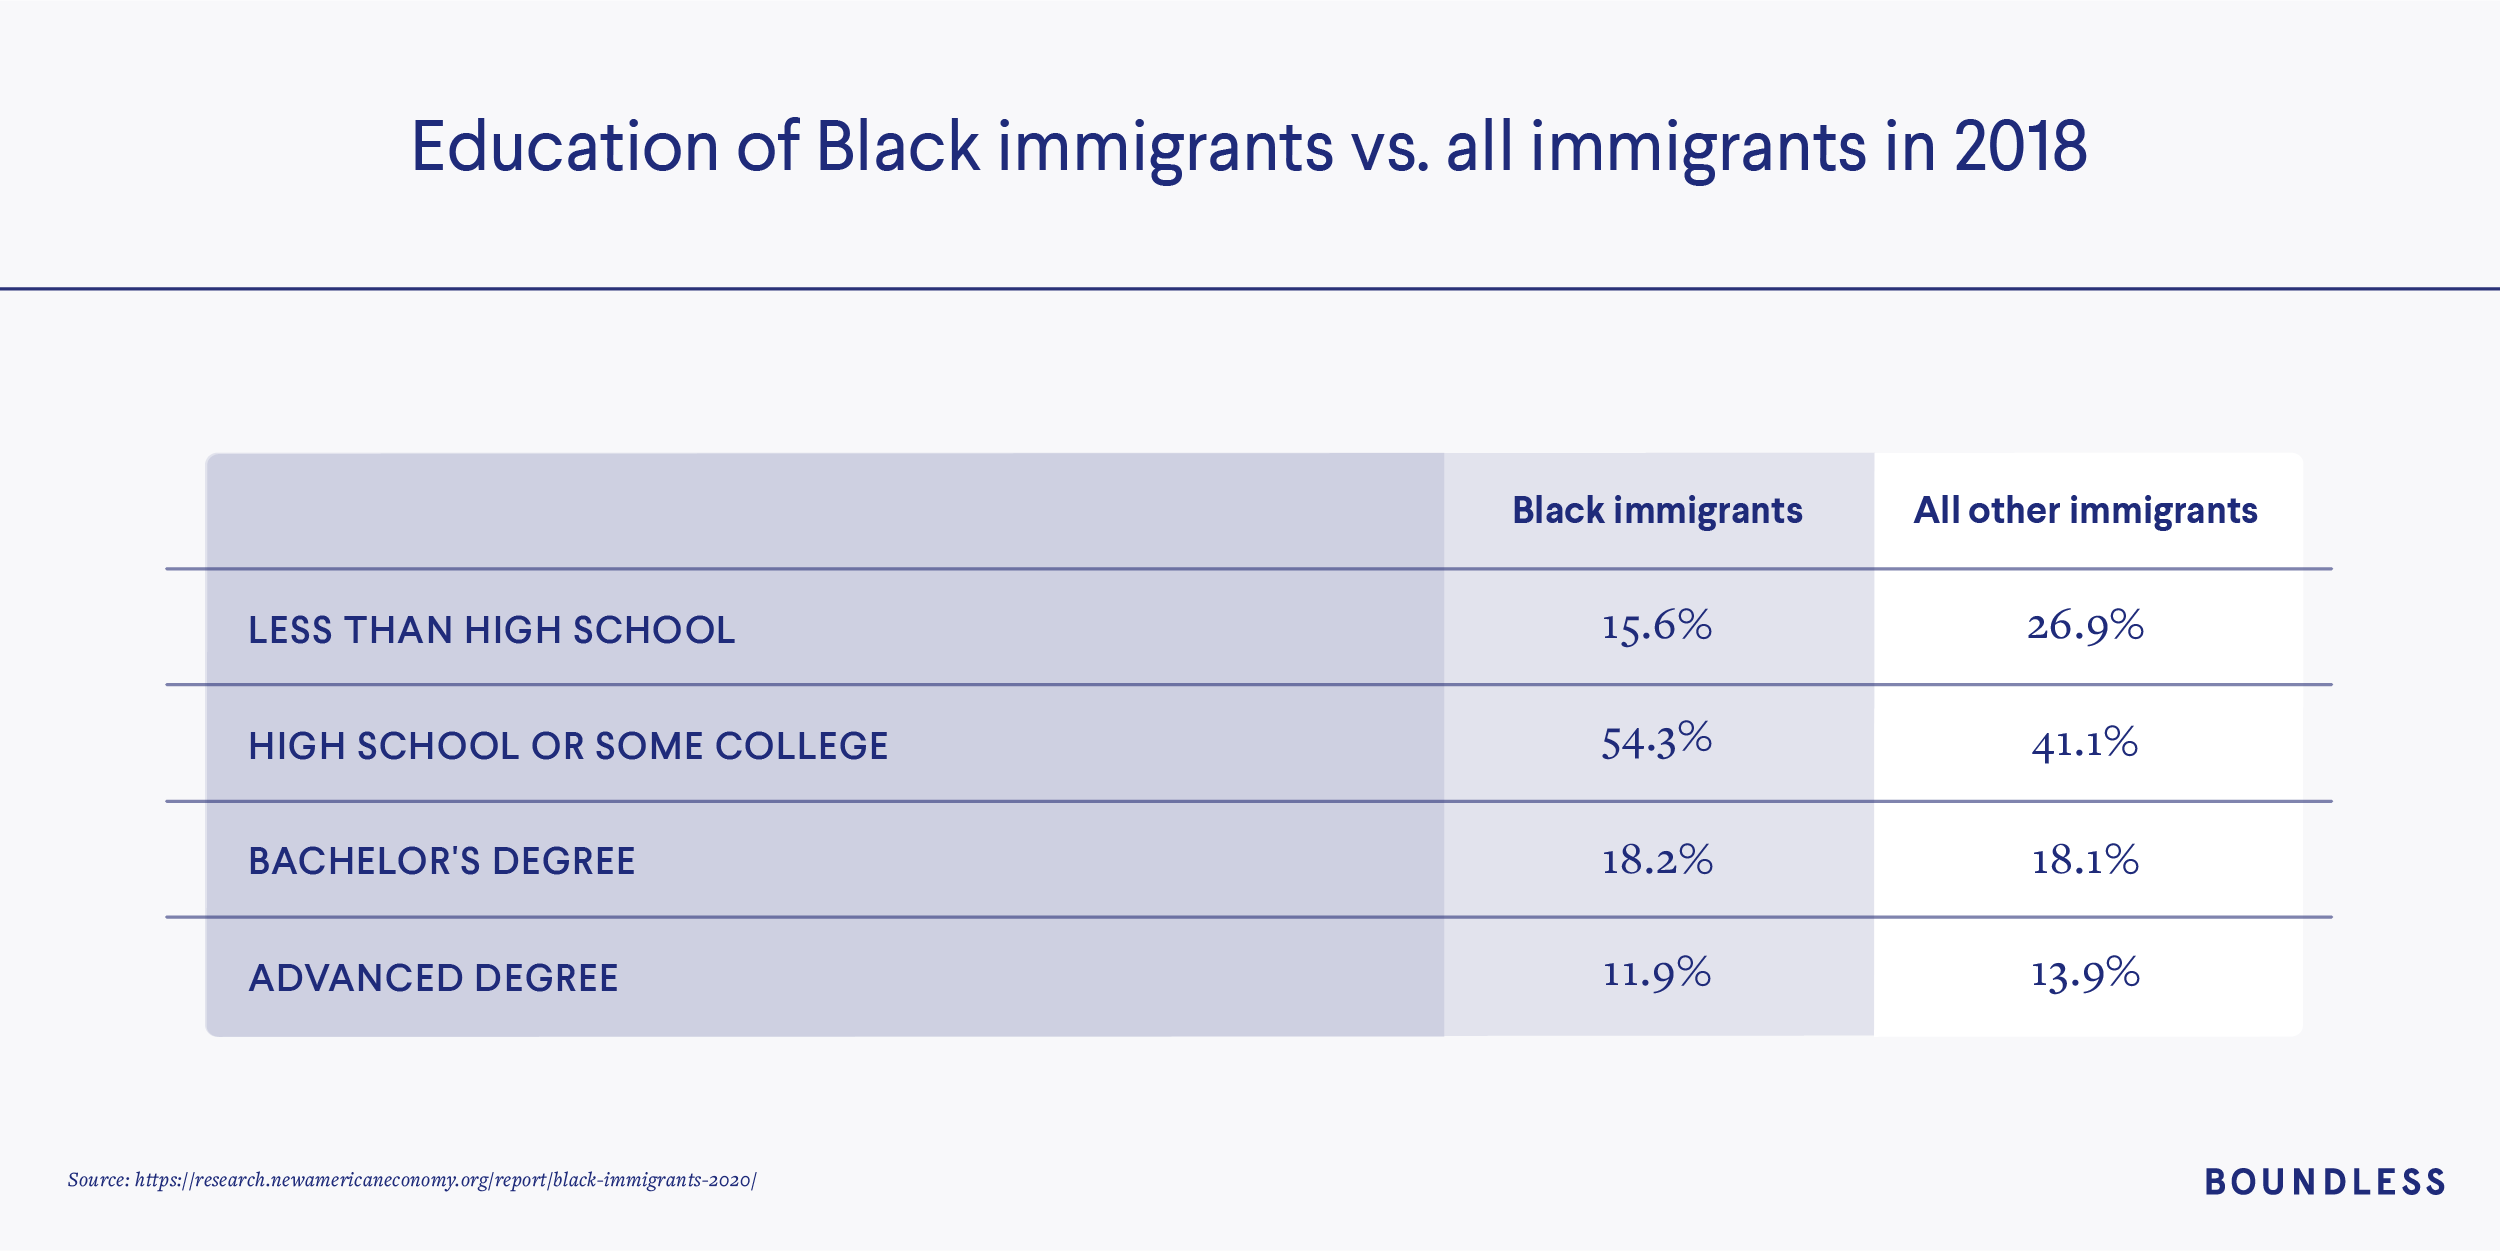 Education of Black immigrants vs. all other immigrants